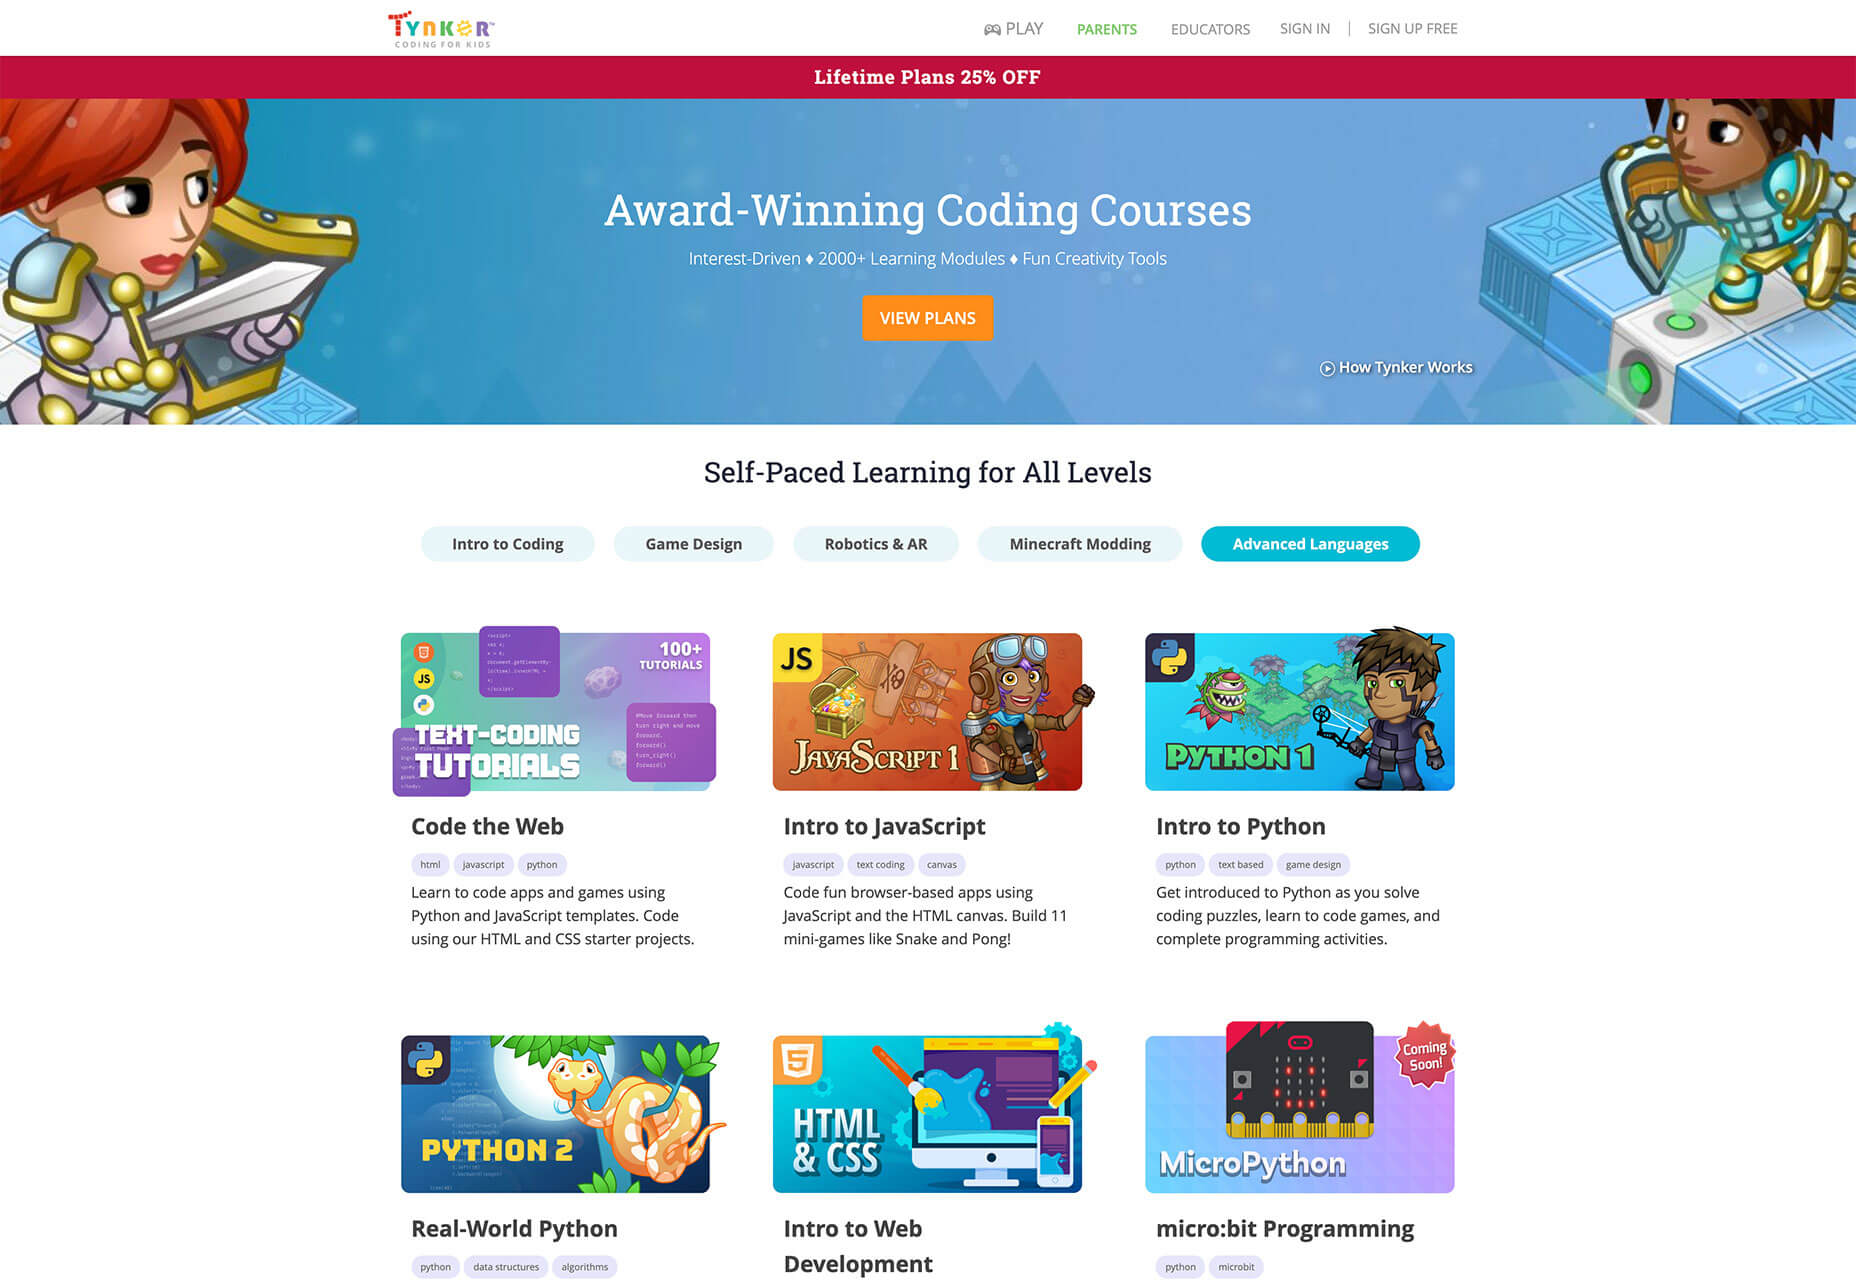 10 Best Mobile Apps for Learning to Code - Web Design Tips